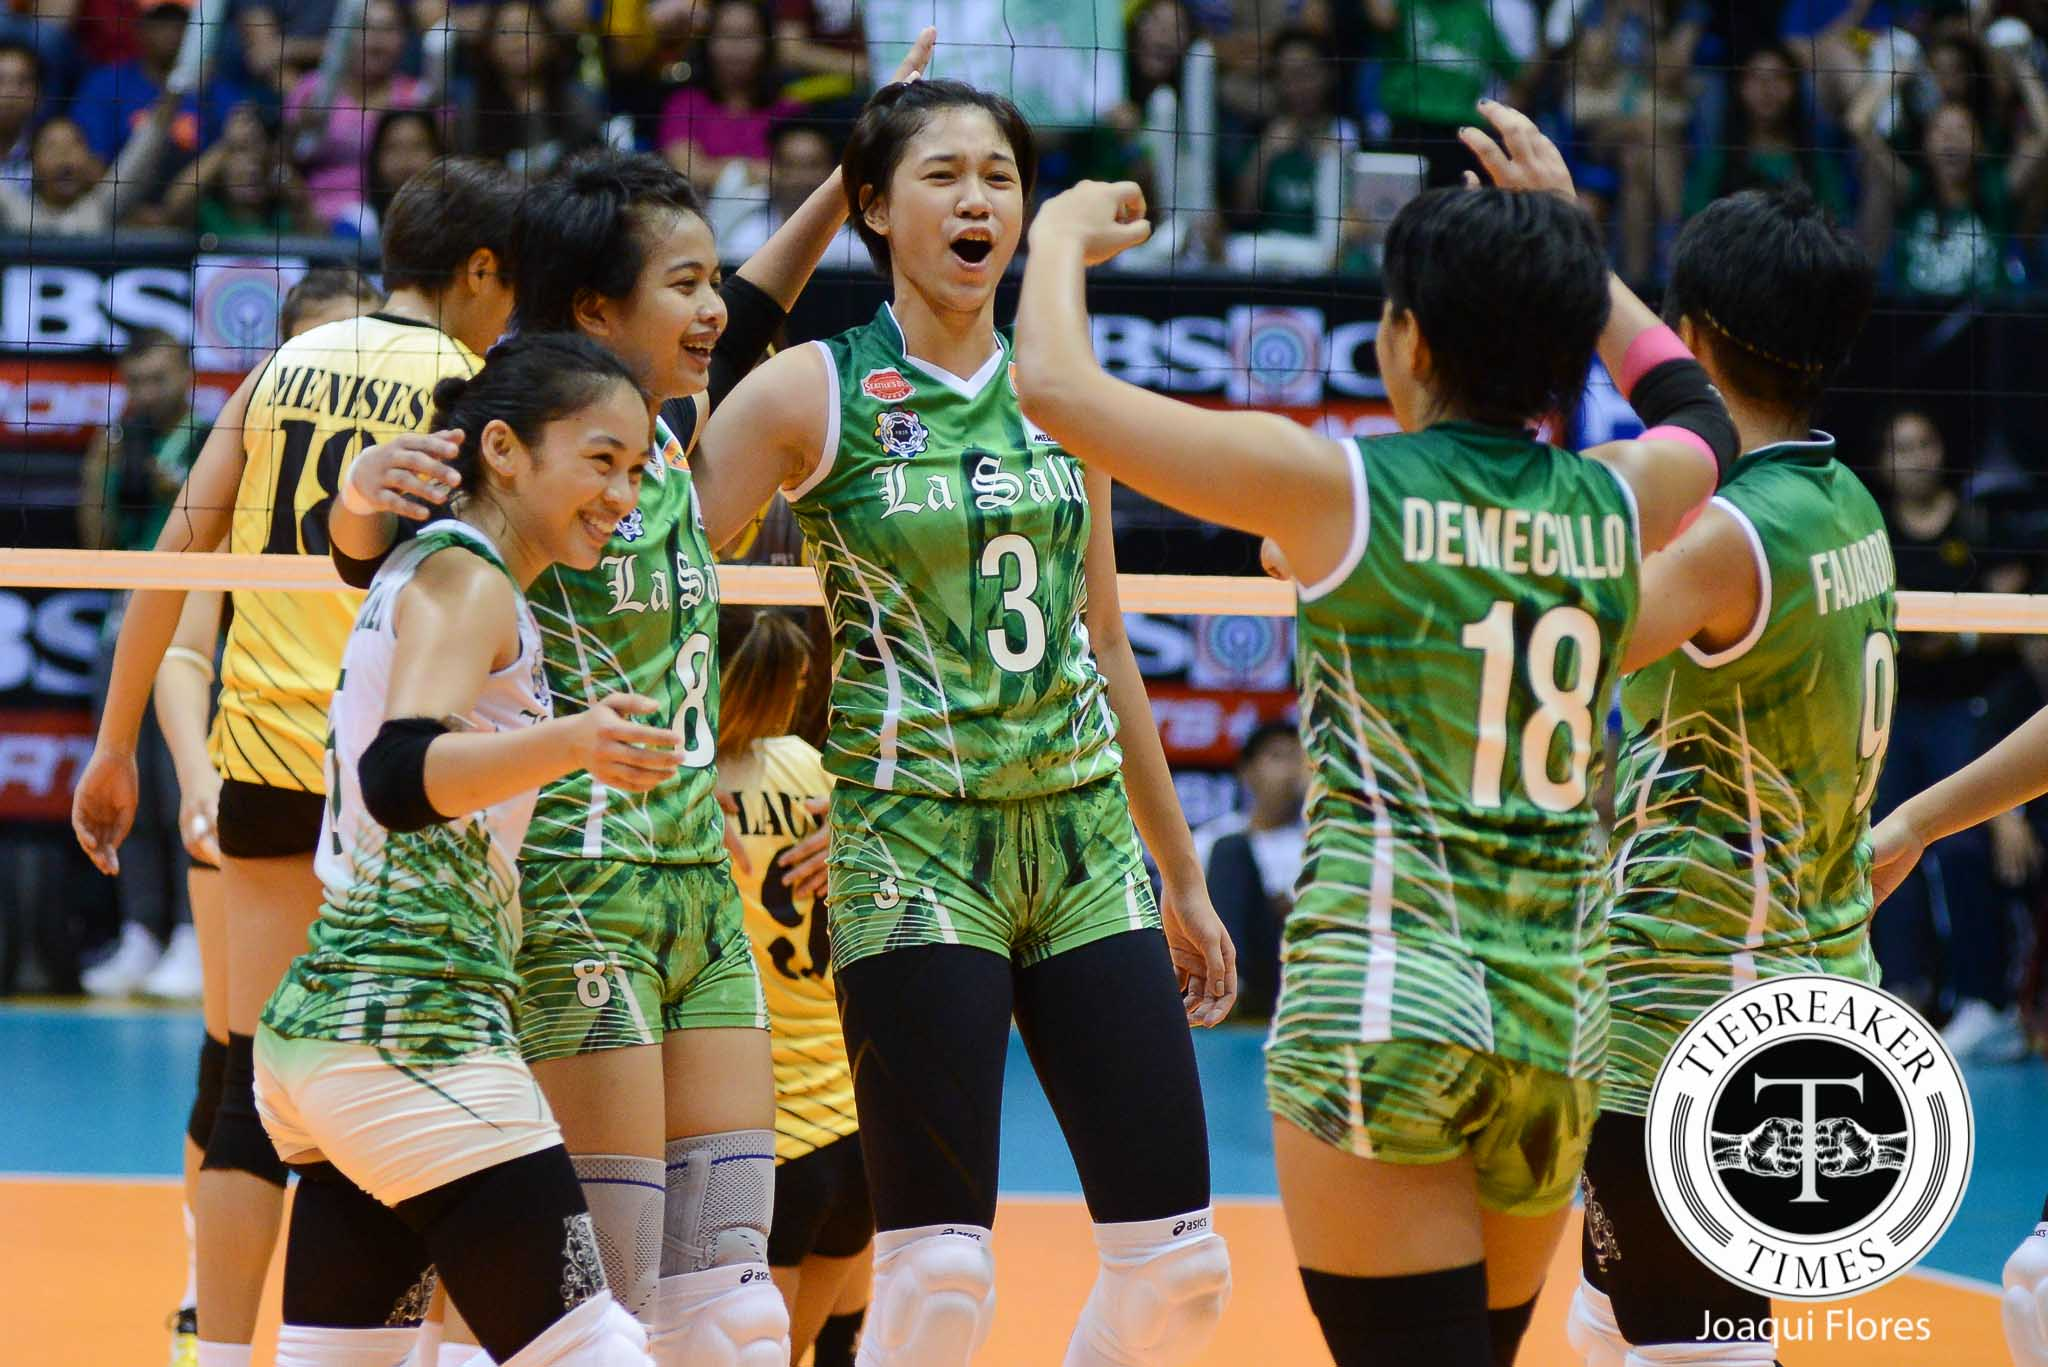 Tiebreaker Times La Salle avenges first round upset, crushes UST DLSU UAAP UST Volleyball  UST Tigresses UAAP Season 78 Women's Volleyball uaap Mika Reyes Kim Dy EJ Laure De La Salle University Lady Spikers Cherry Rondina Carmela Tunay Ara Galang